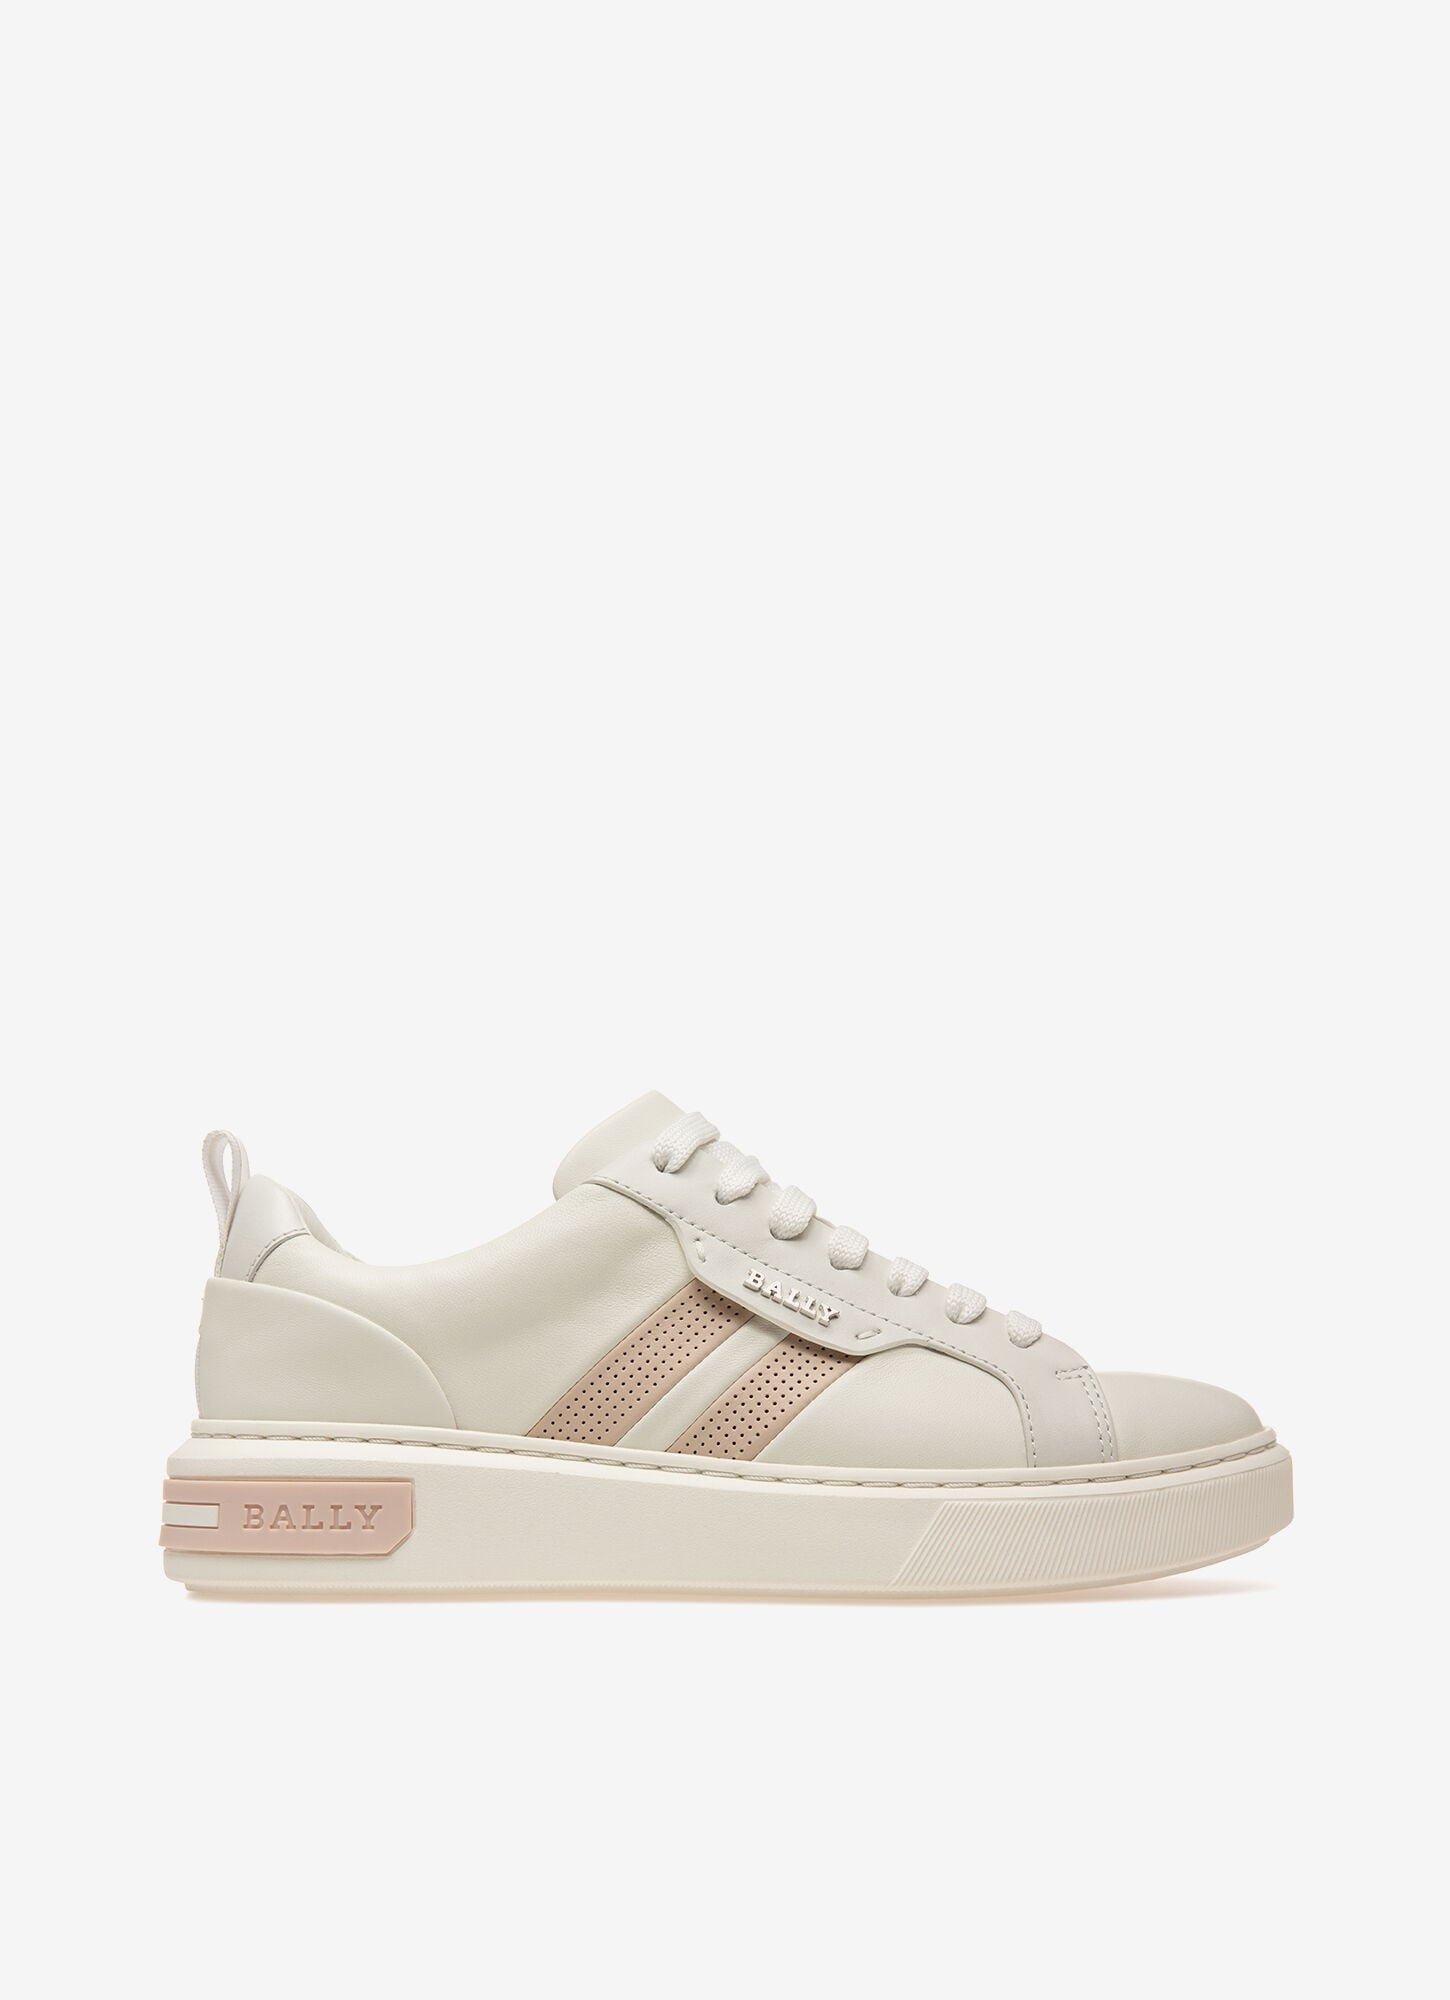 Maxim| Womens Sneakers | White Leather